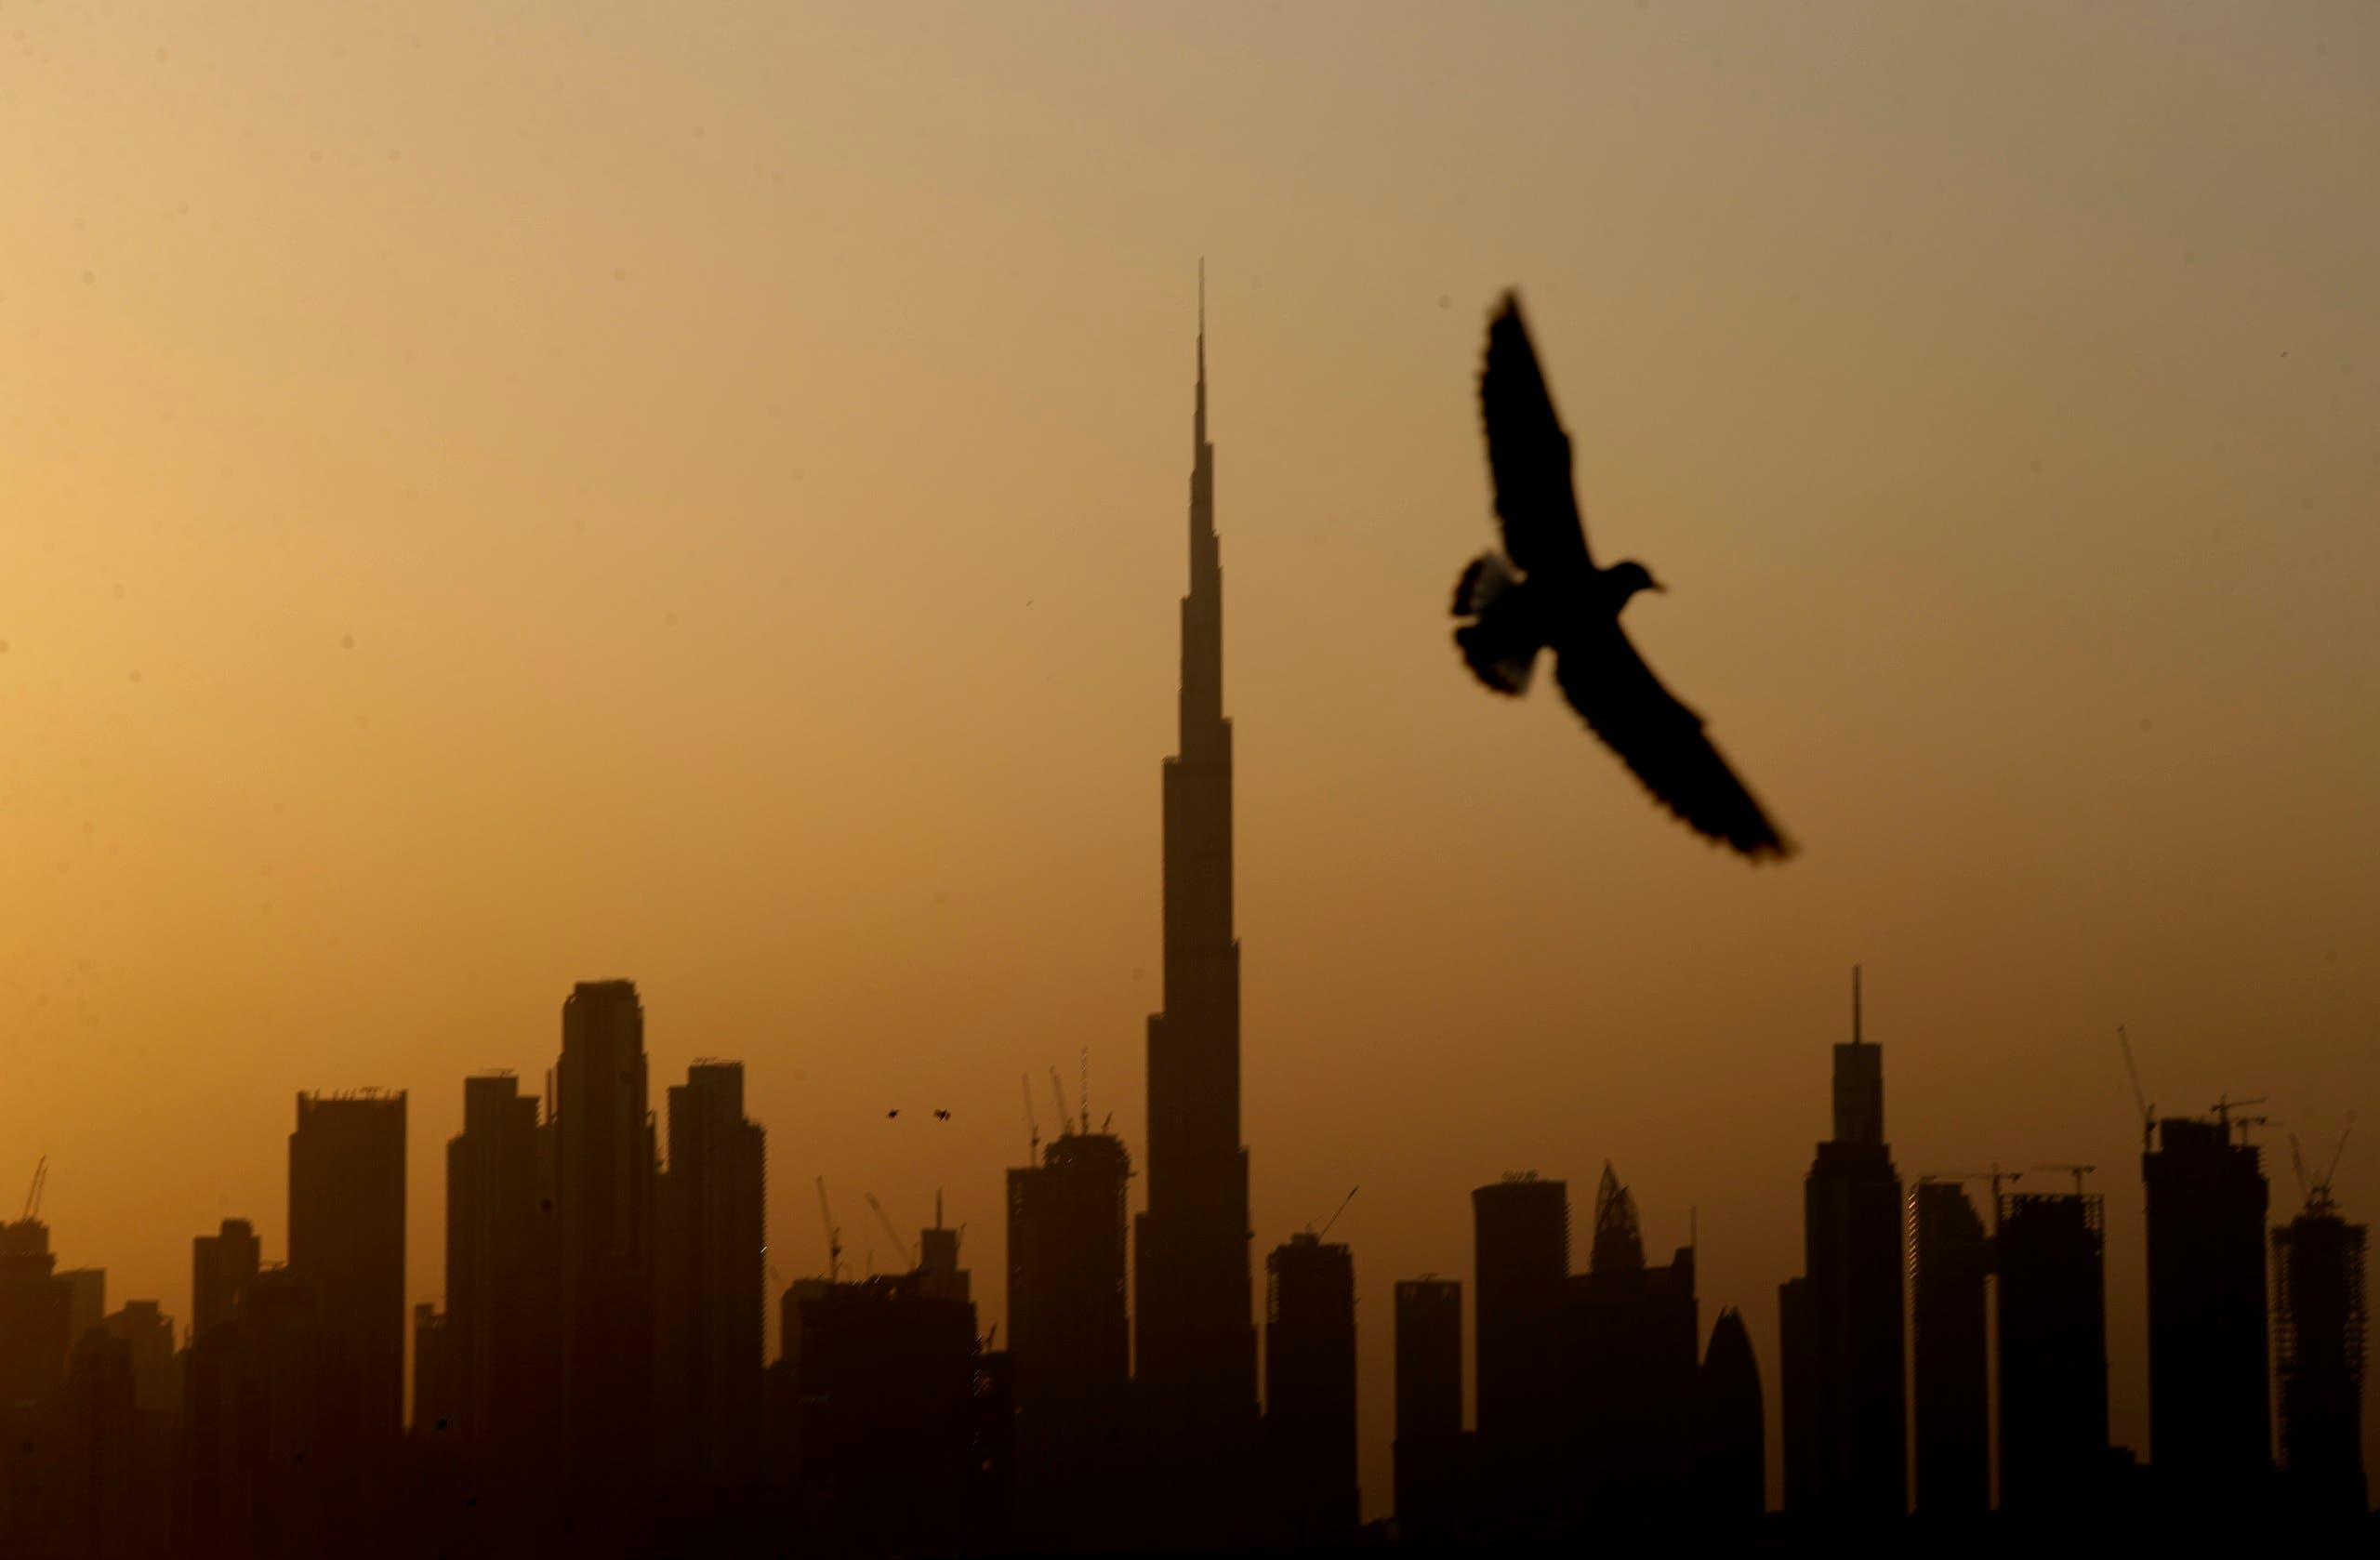 A seagull flies pass the view of city skyline and the world tallest tower, Burj Khalifa, in Dubai, United Arab Emirates. (File photo: AP)